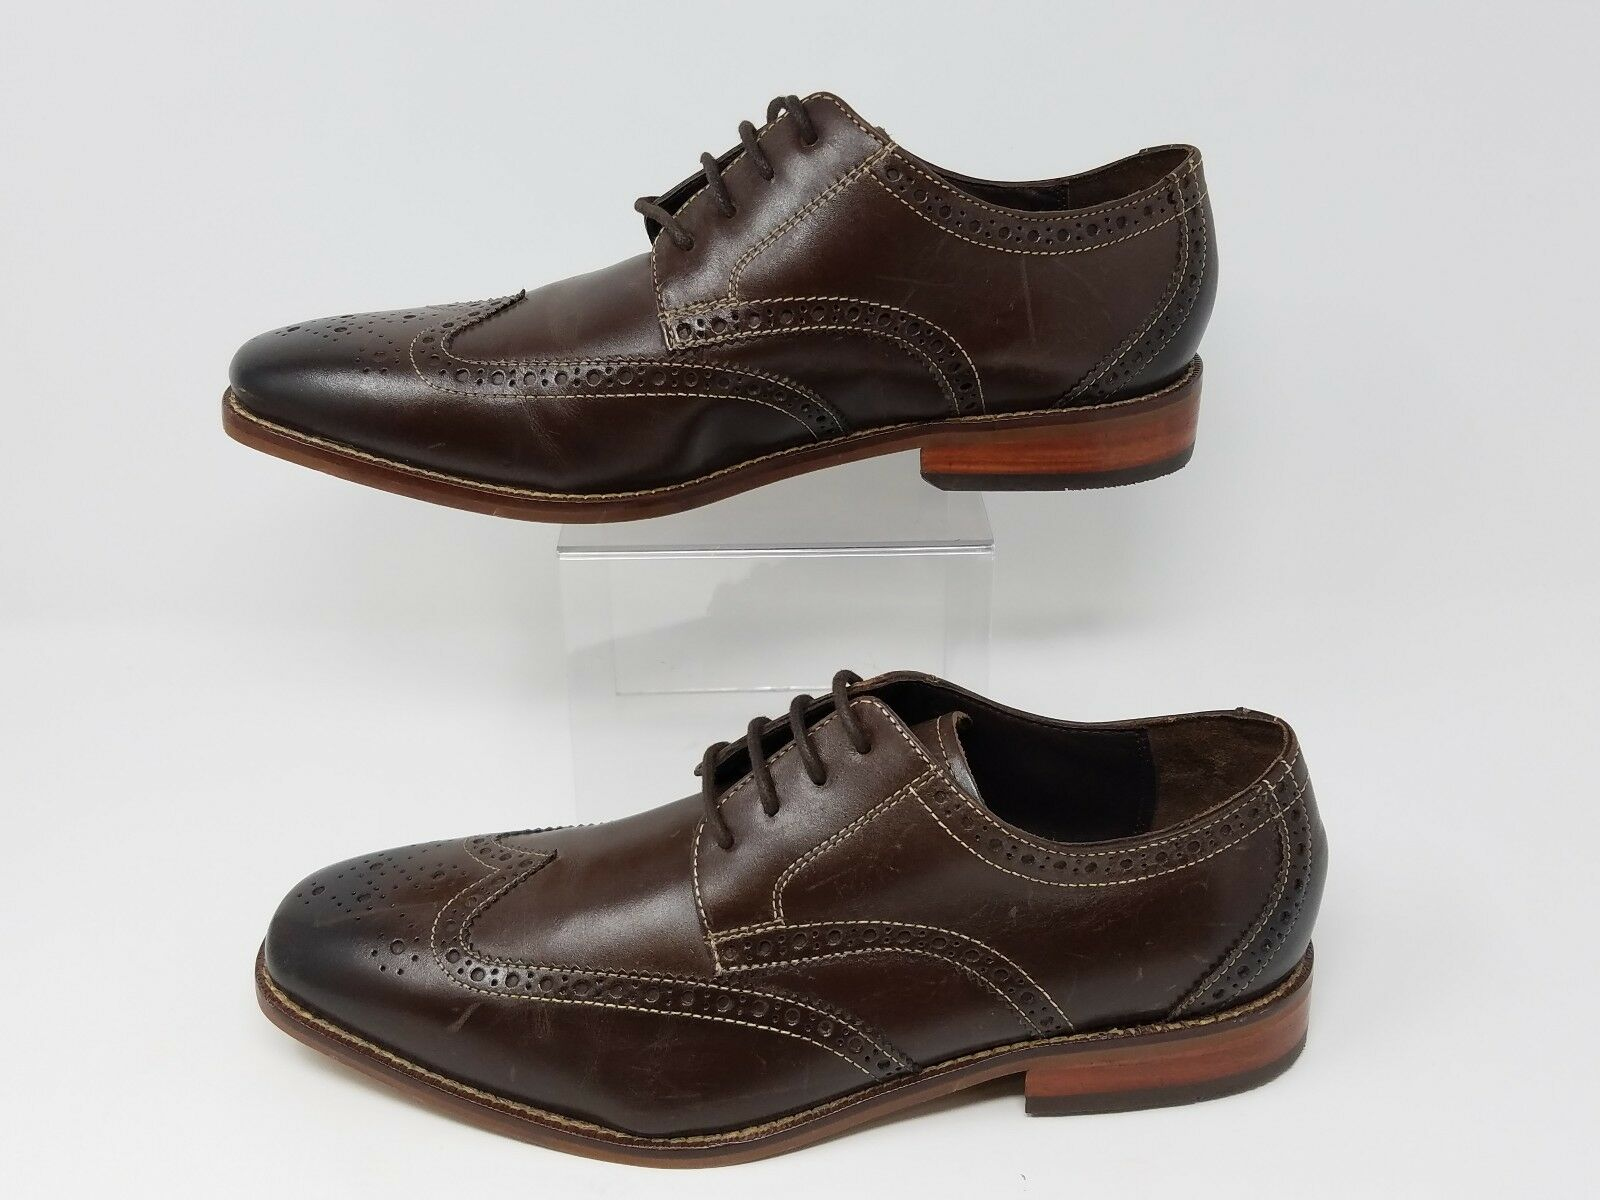 Florsheim Men's shoes Castellano Wing Tip Brown Leather 14137-200  sz 8.5 D